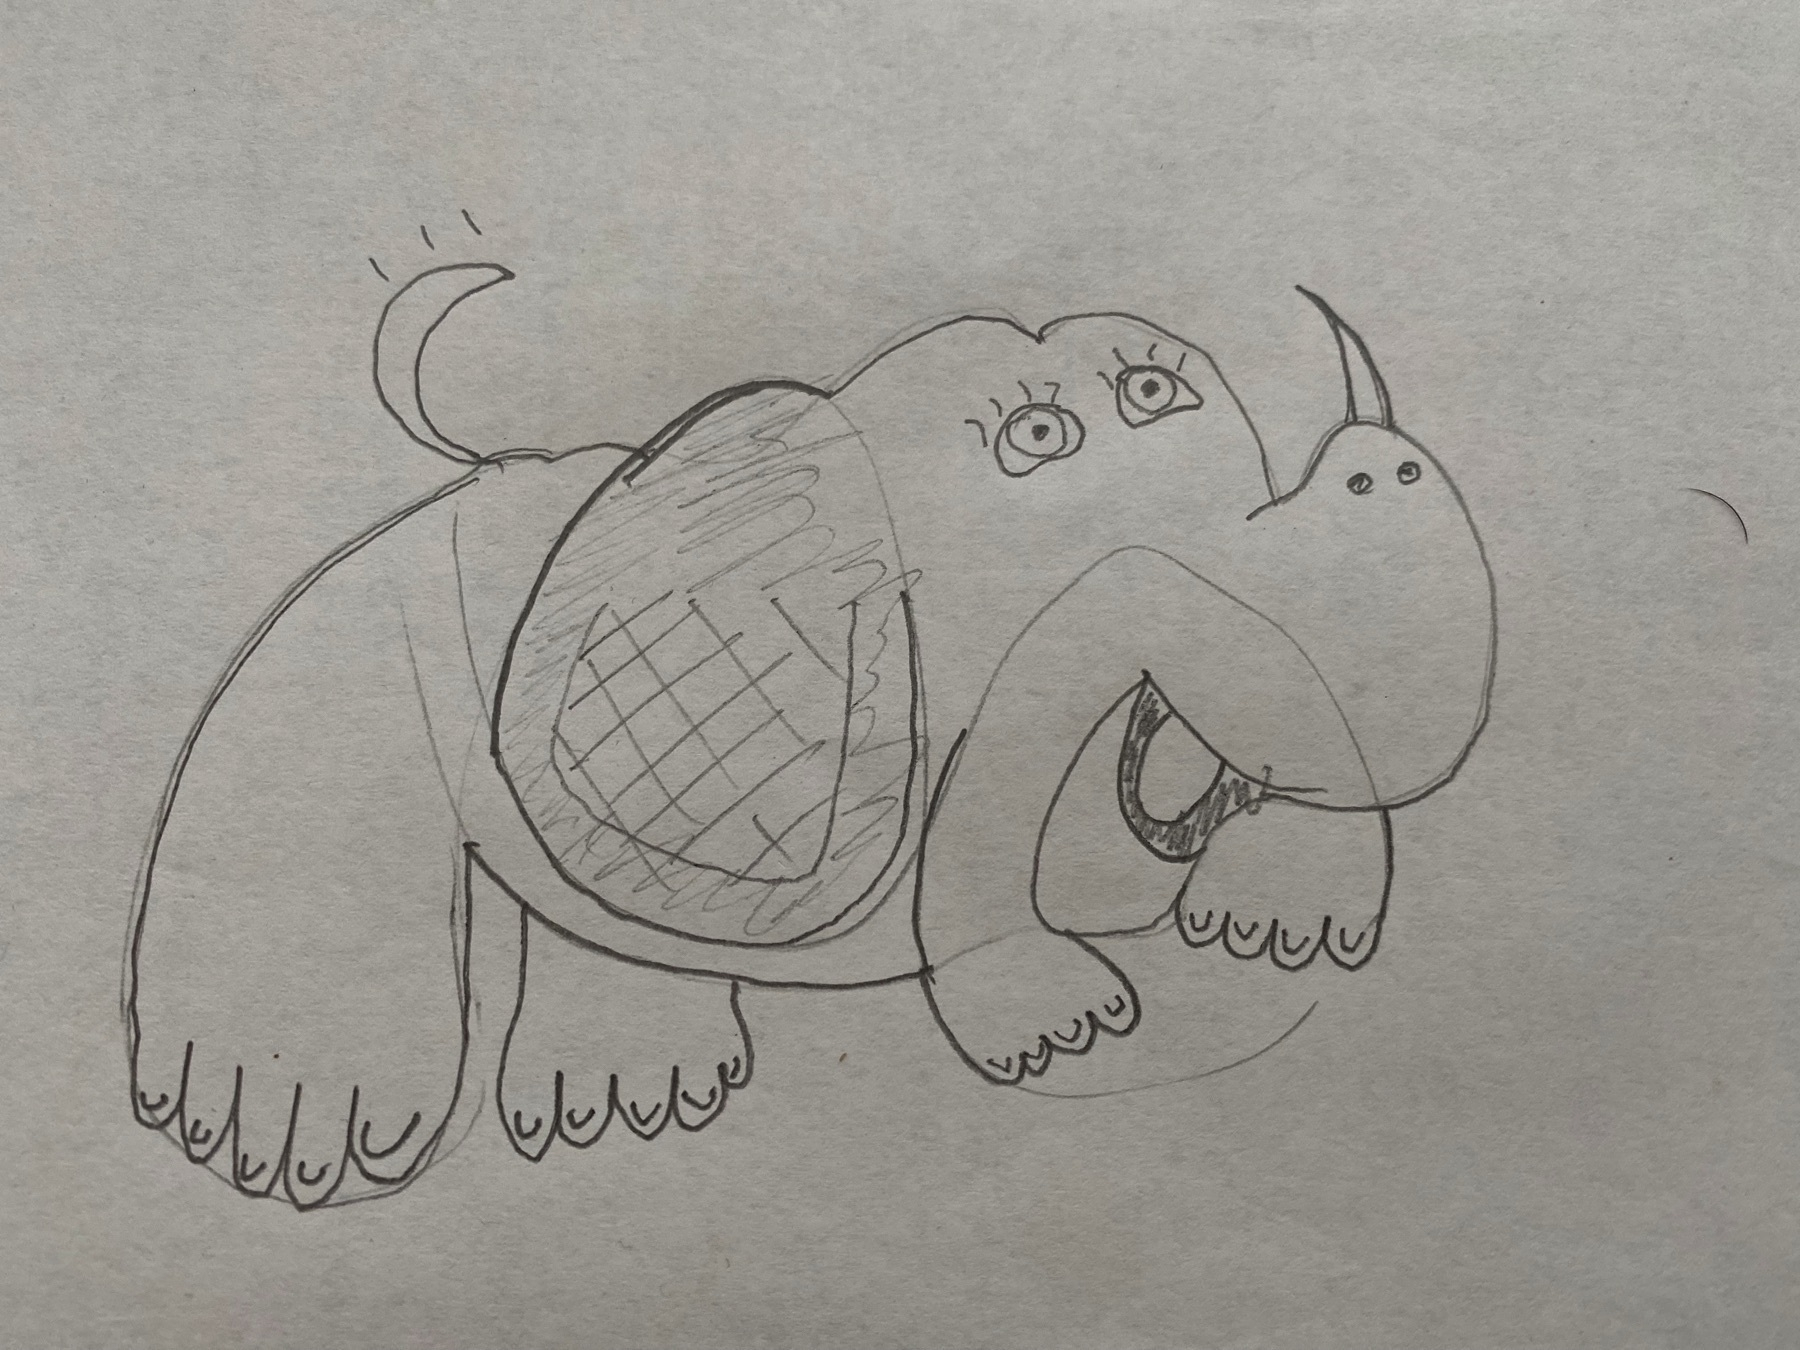 Drawing of a vaguely elephantine, rhinocerous-like creature with human-styled hands and feet.